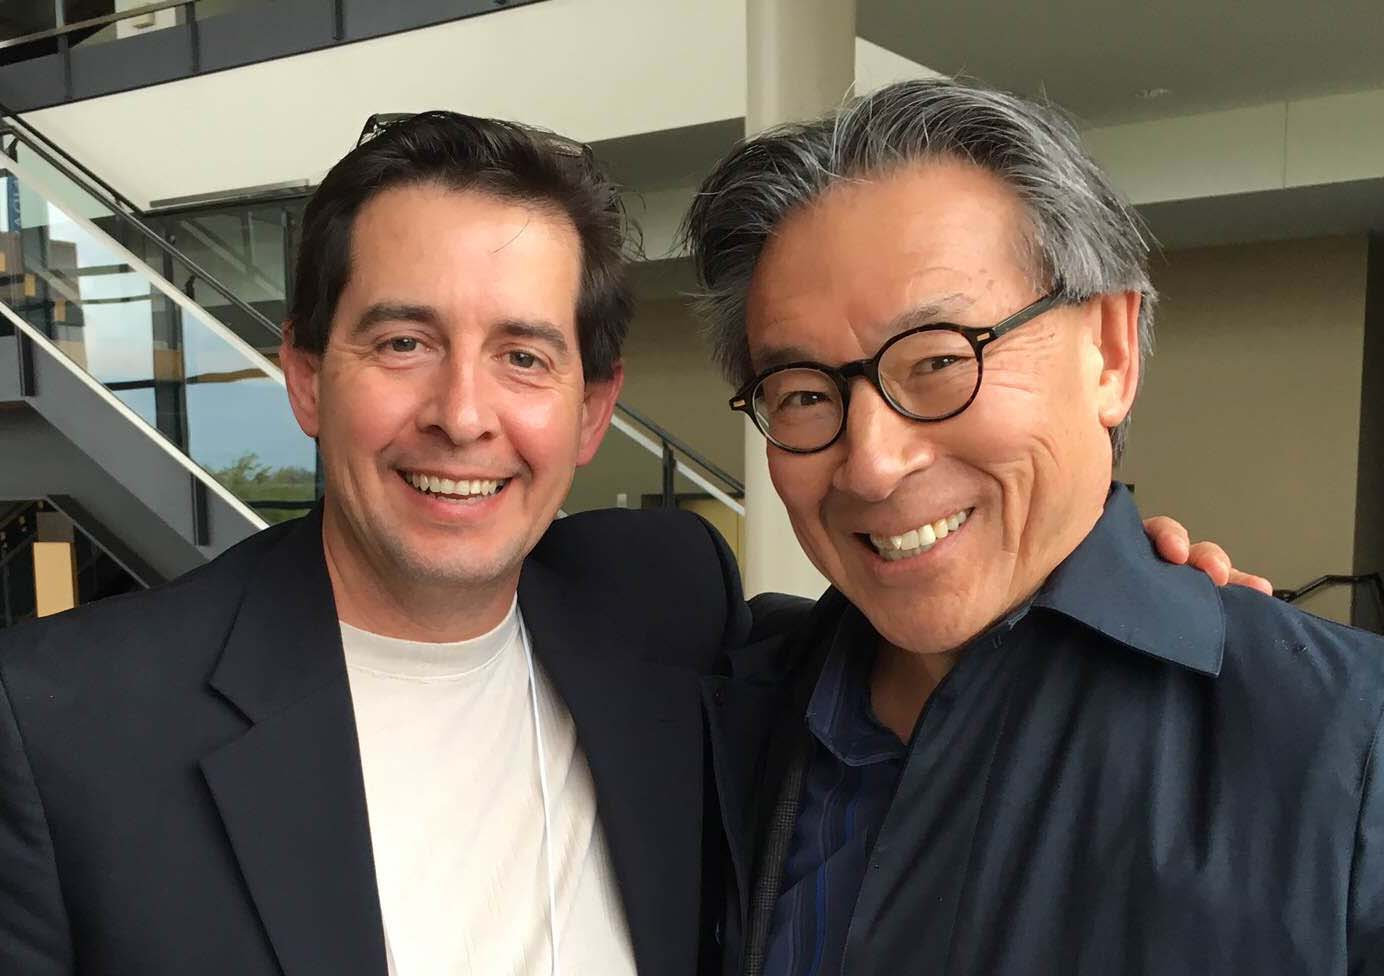 Dr. Ortiz and Dr. Matsui inspire students at 2016 Statewide Symposium